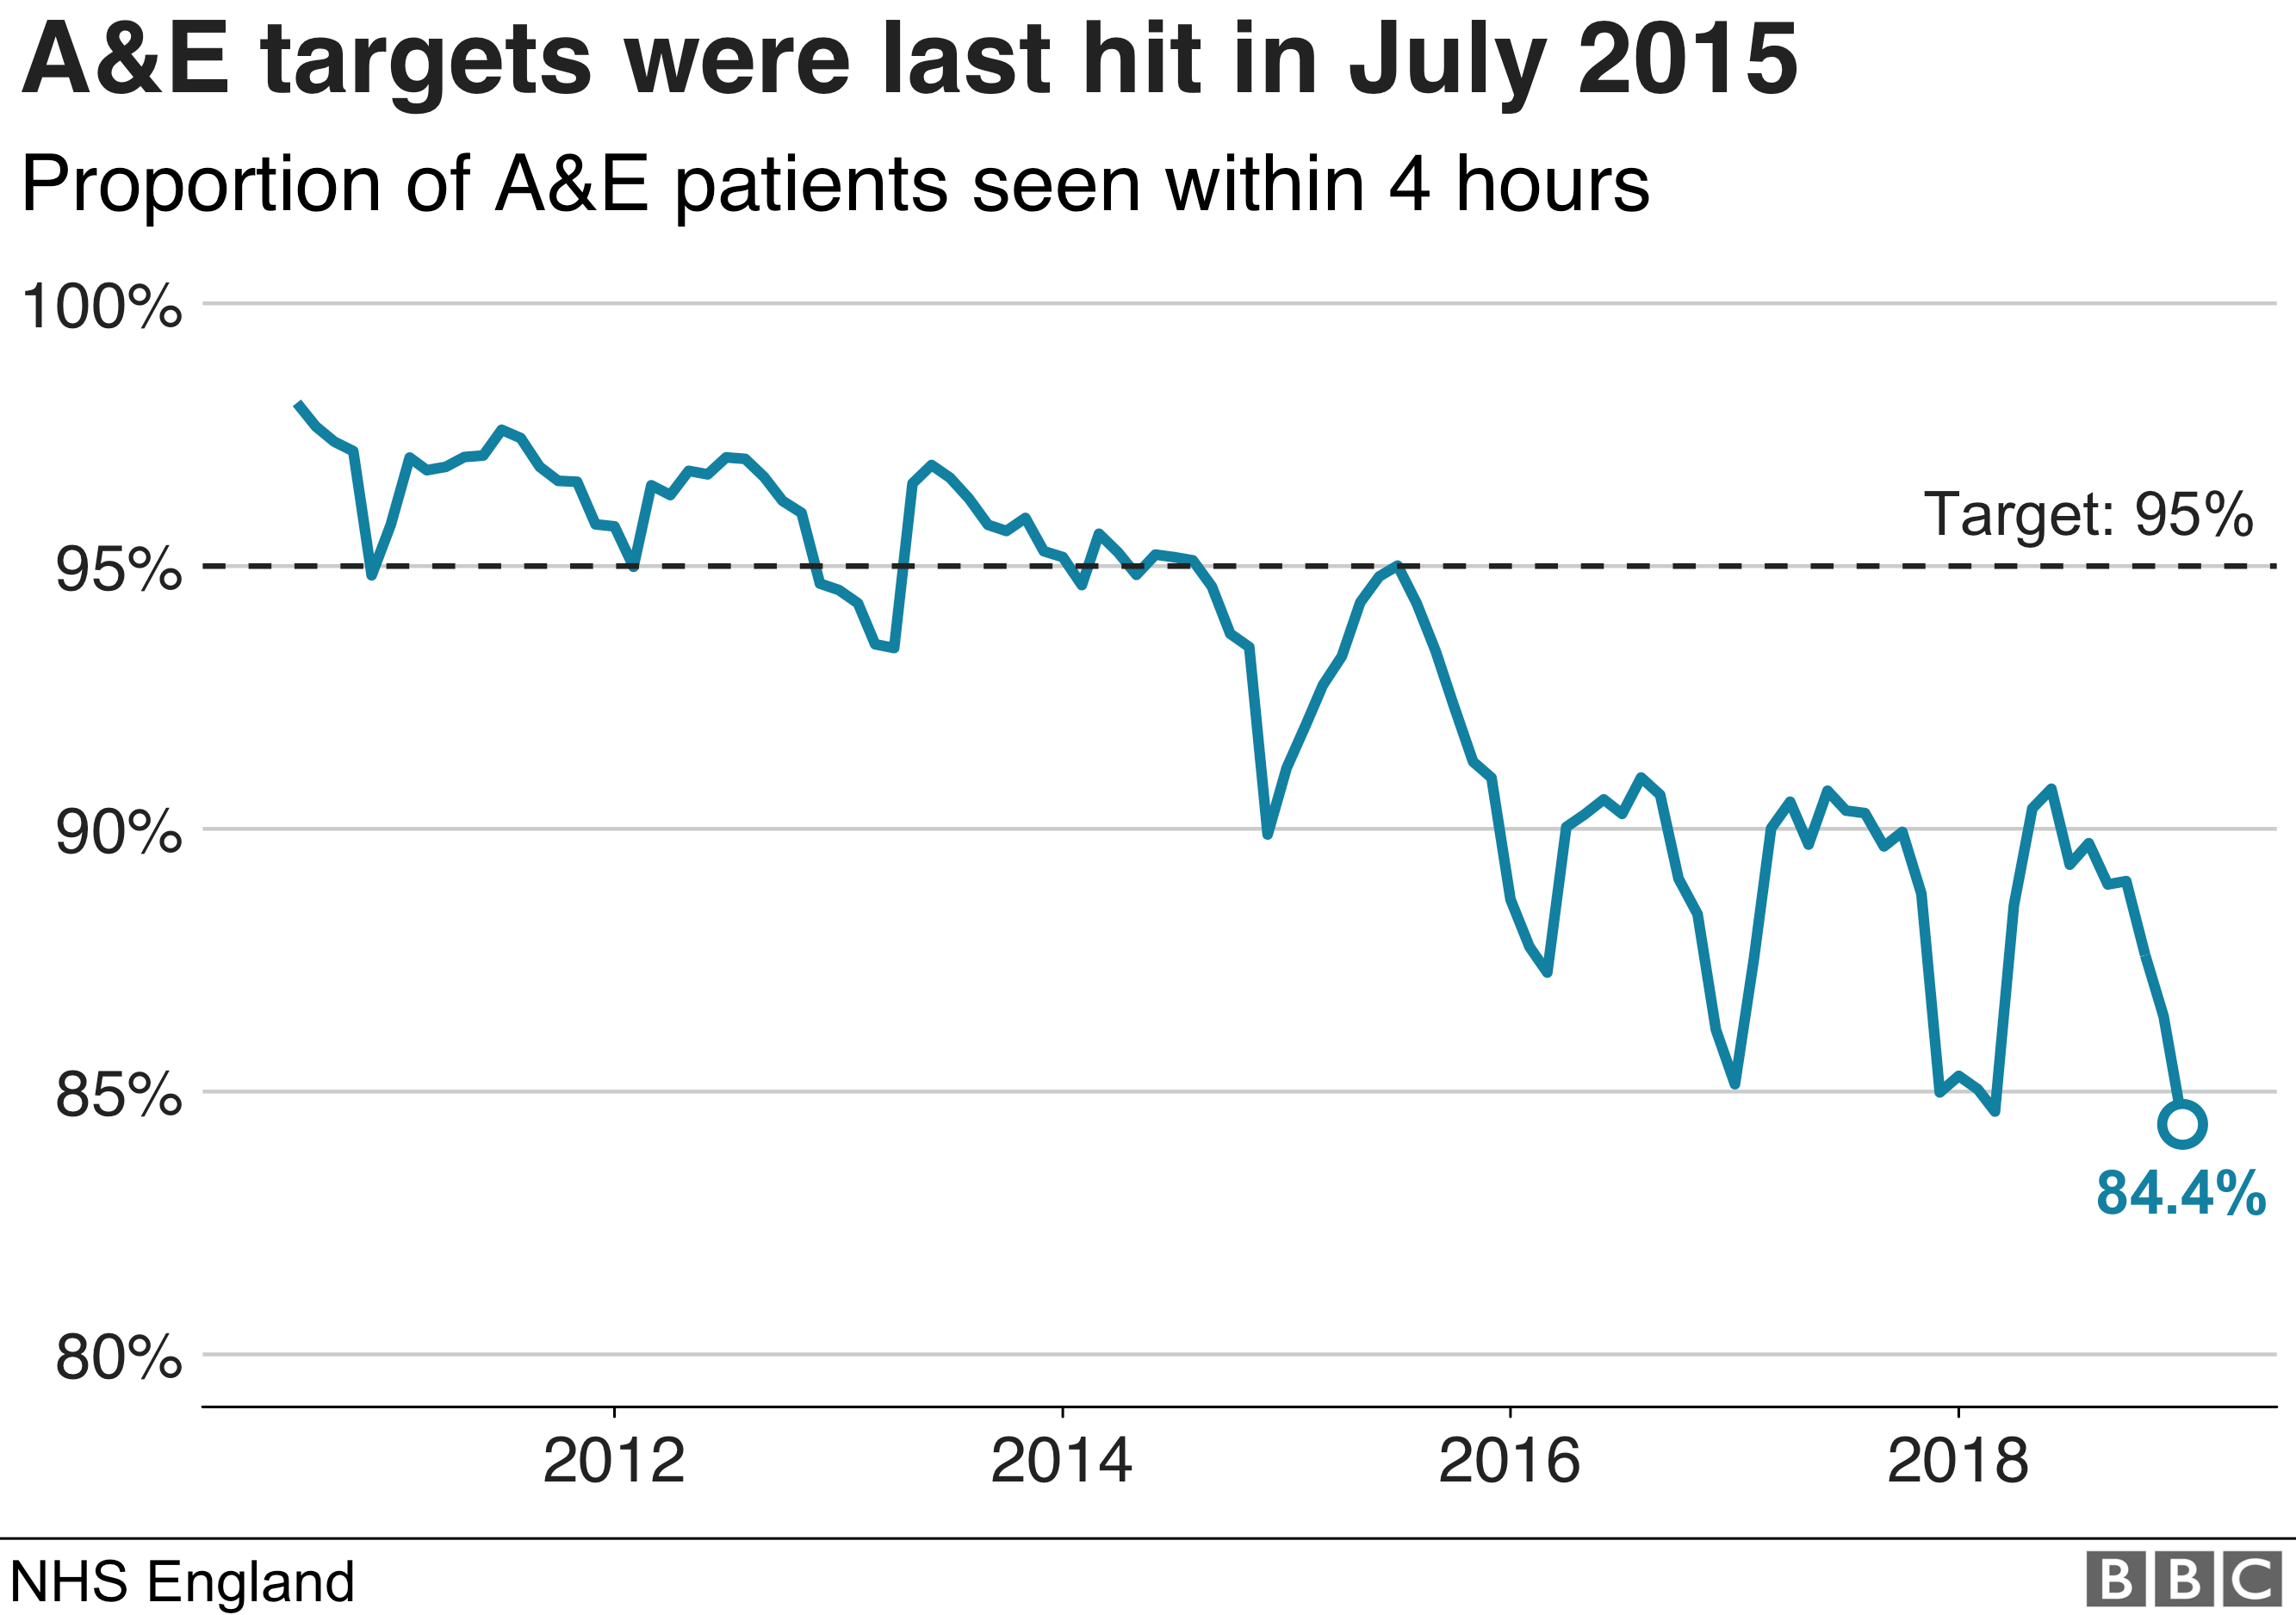 Chart showing that A&E targets were last hit in July 2015